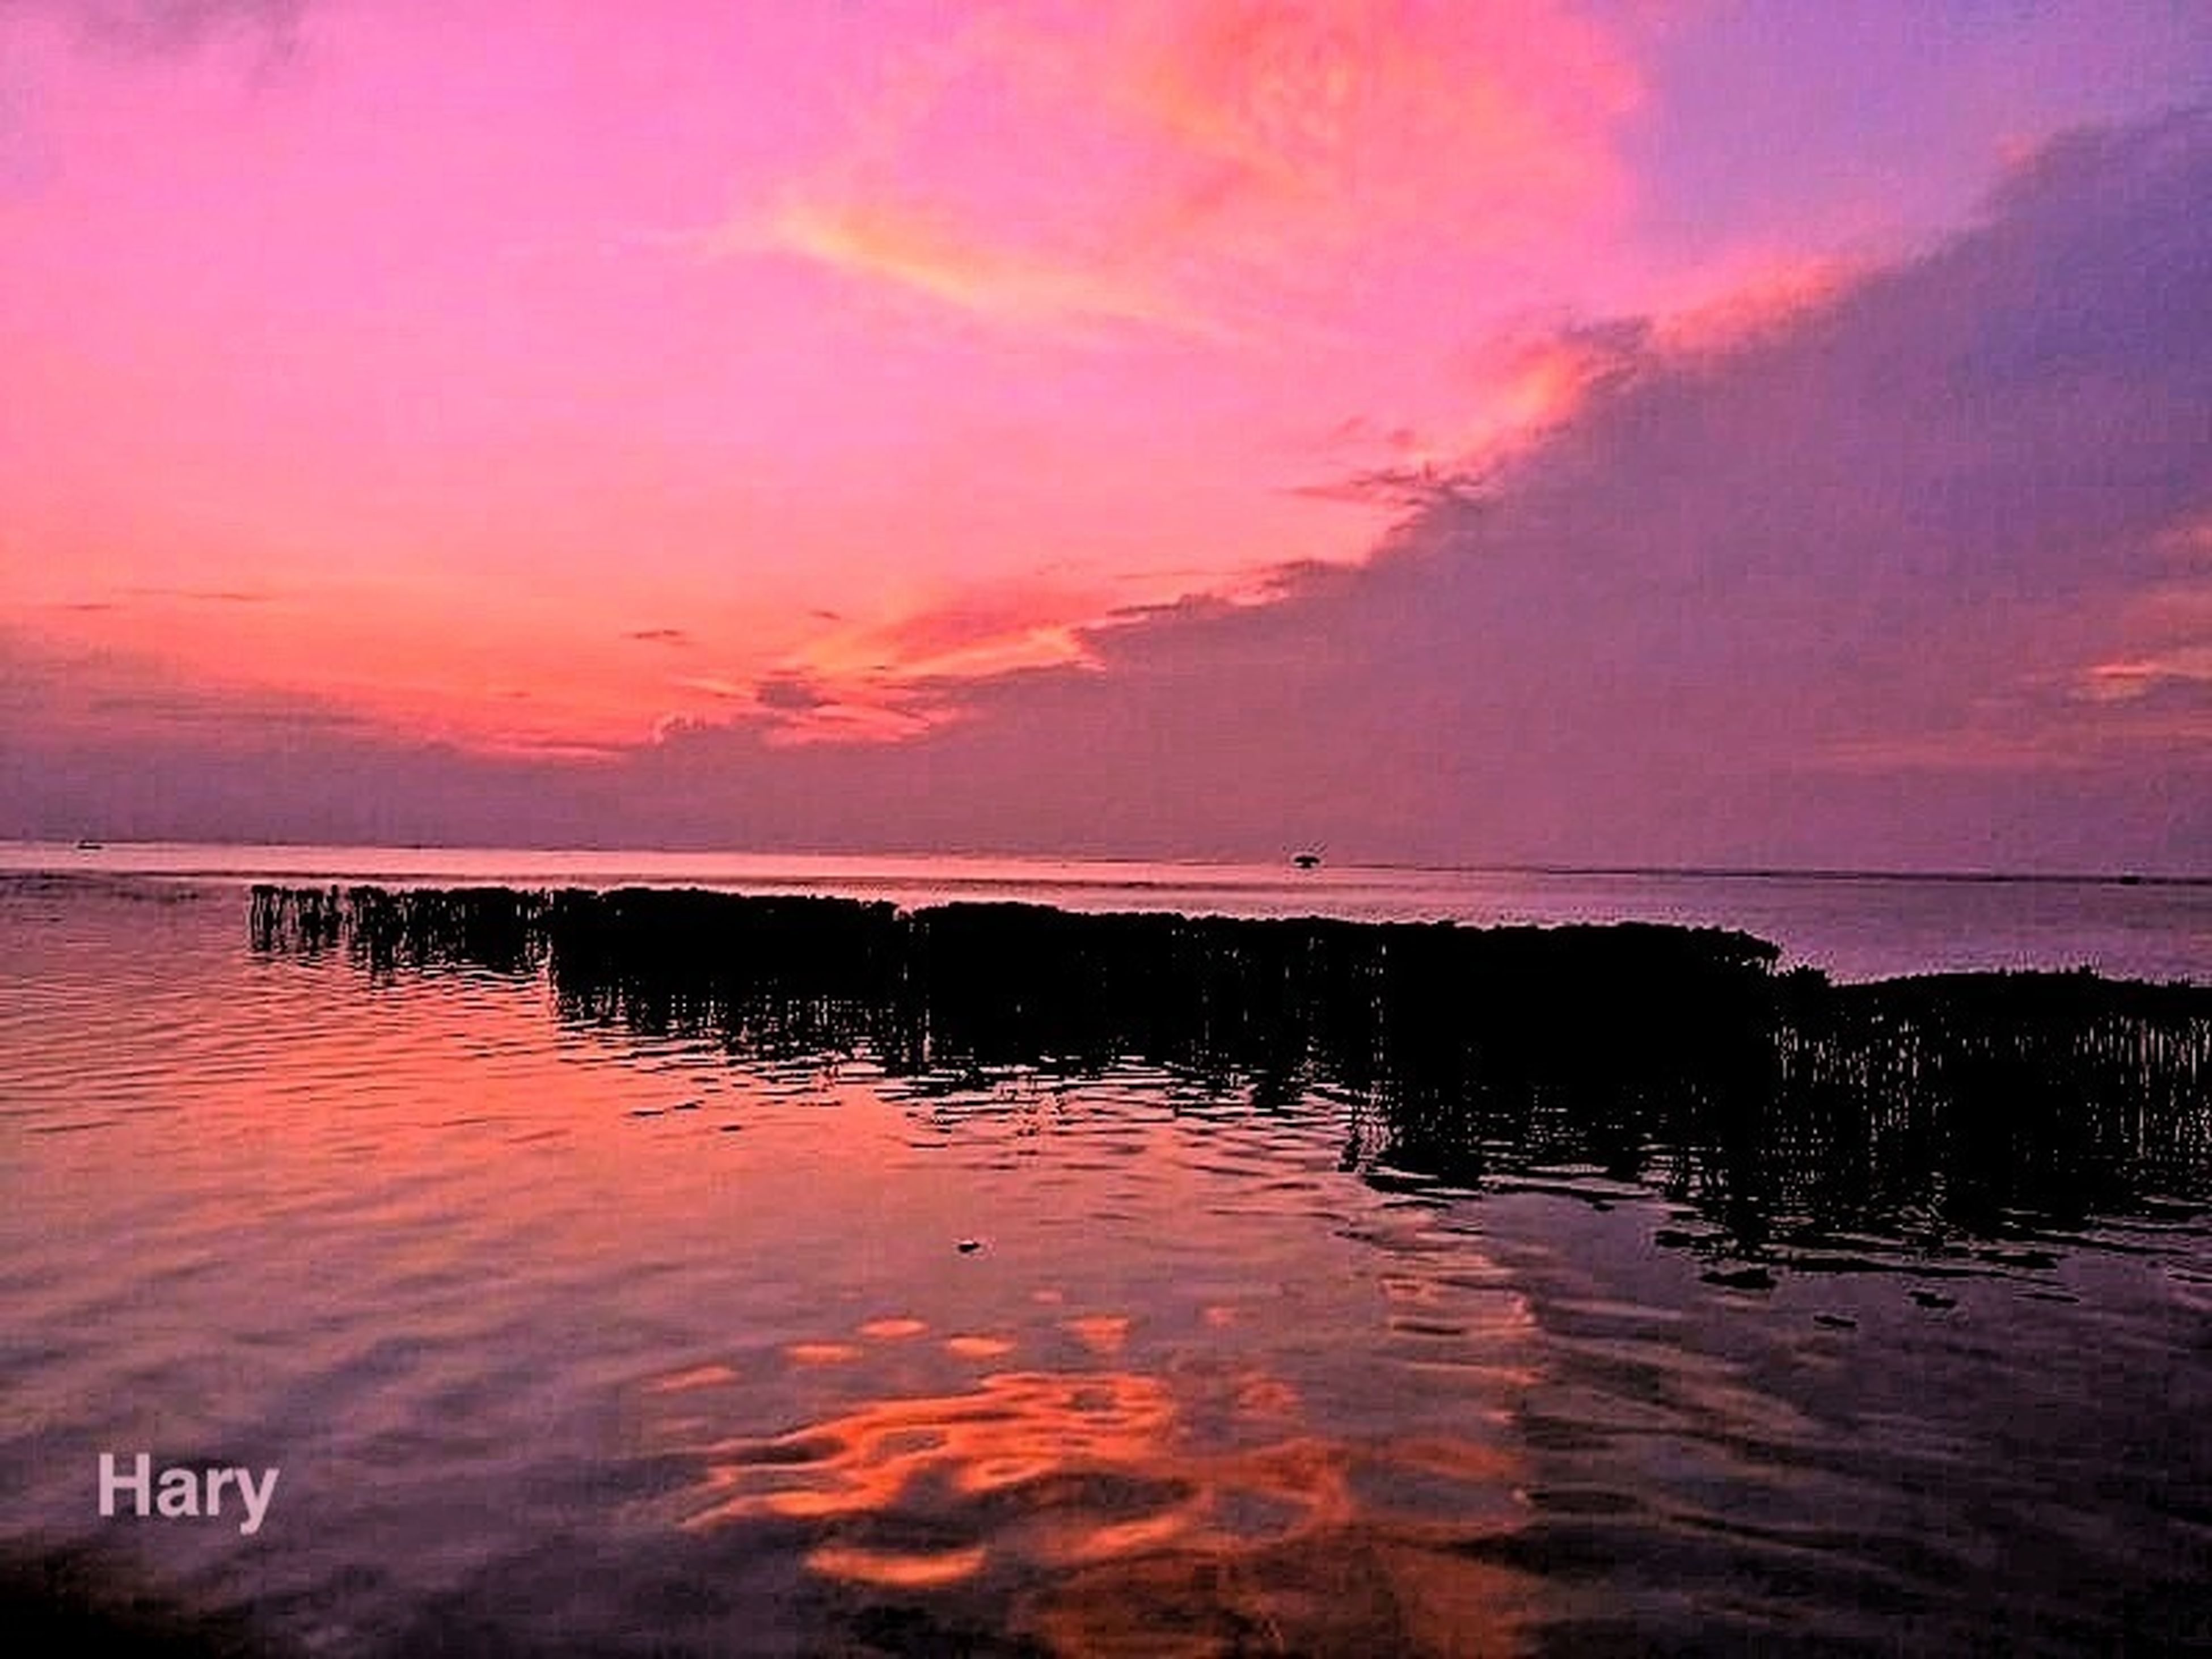 sunset, water, sky, tranquil scene, scenics, tranquility, reflection, sea, beauty in nature, orange color, cloud - sky, idyllic, horizon over water, nature, waterfront, cloud, silhouette, lake, beach, dusk